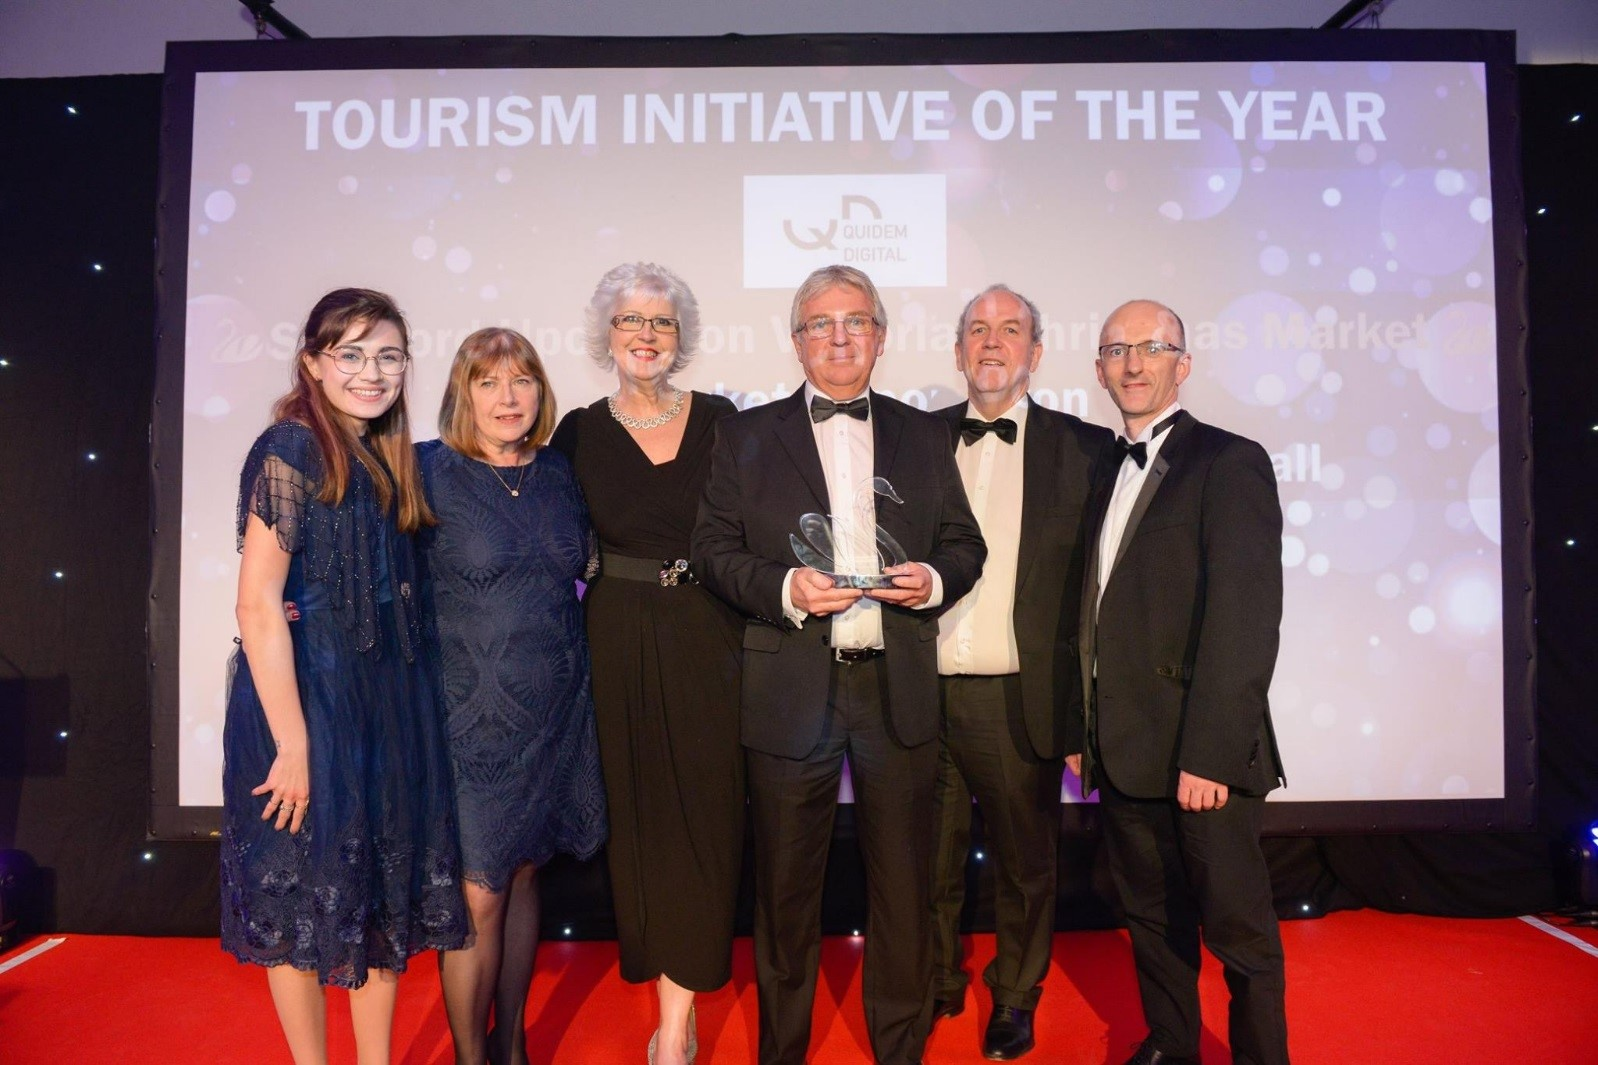 Pride of Stratford Awards - Tourism Initiative of the Year 2018